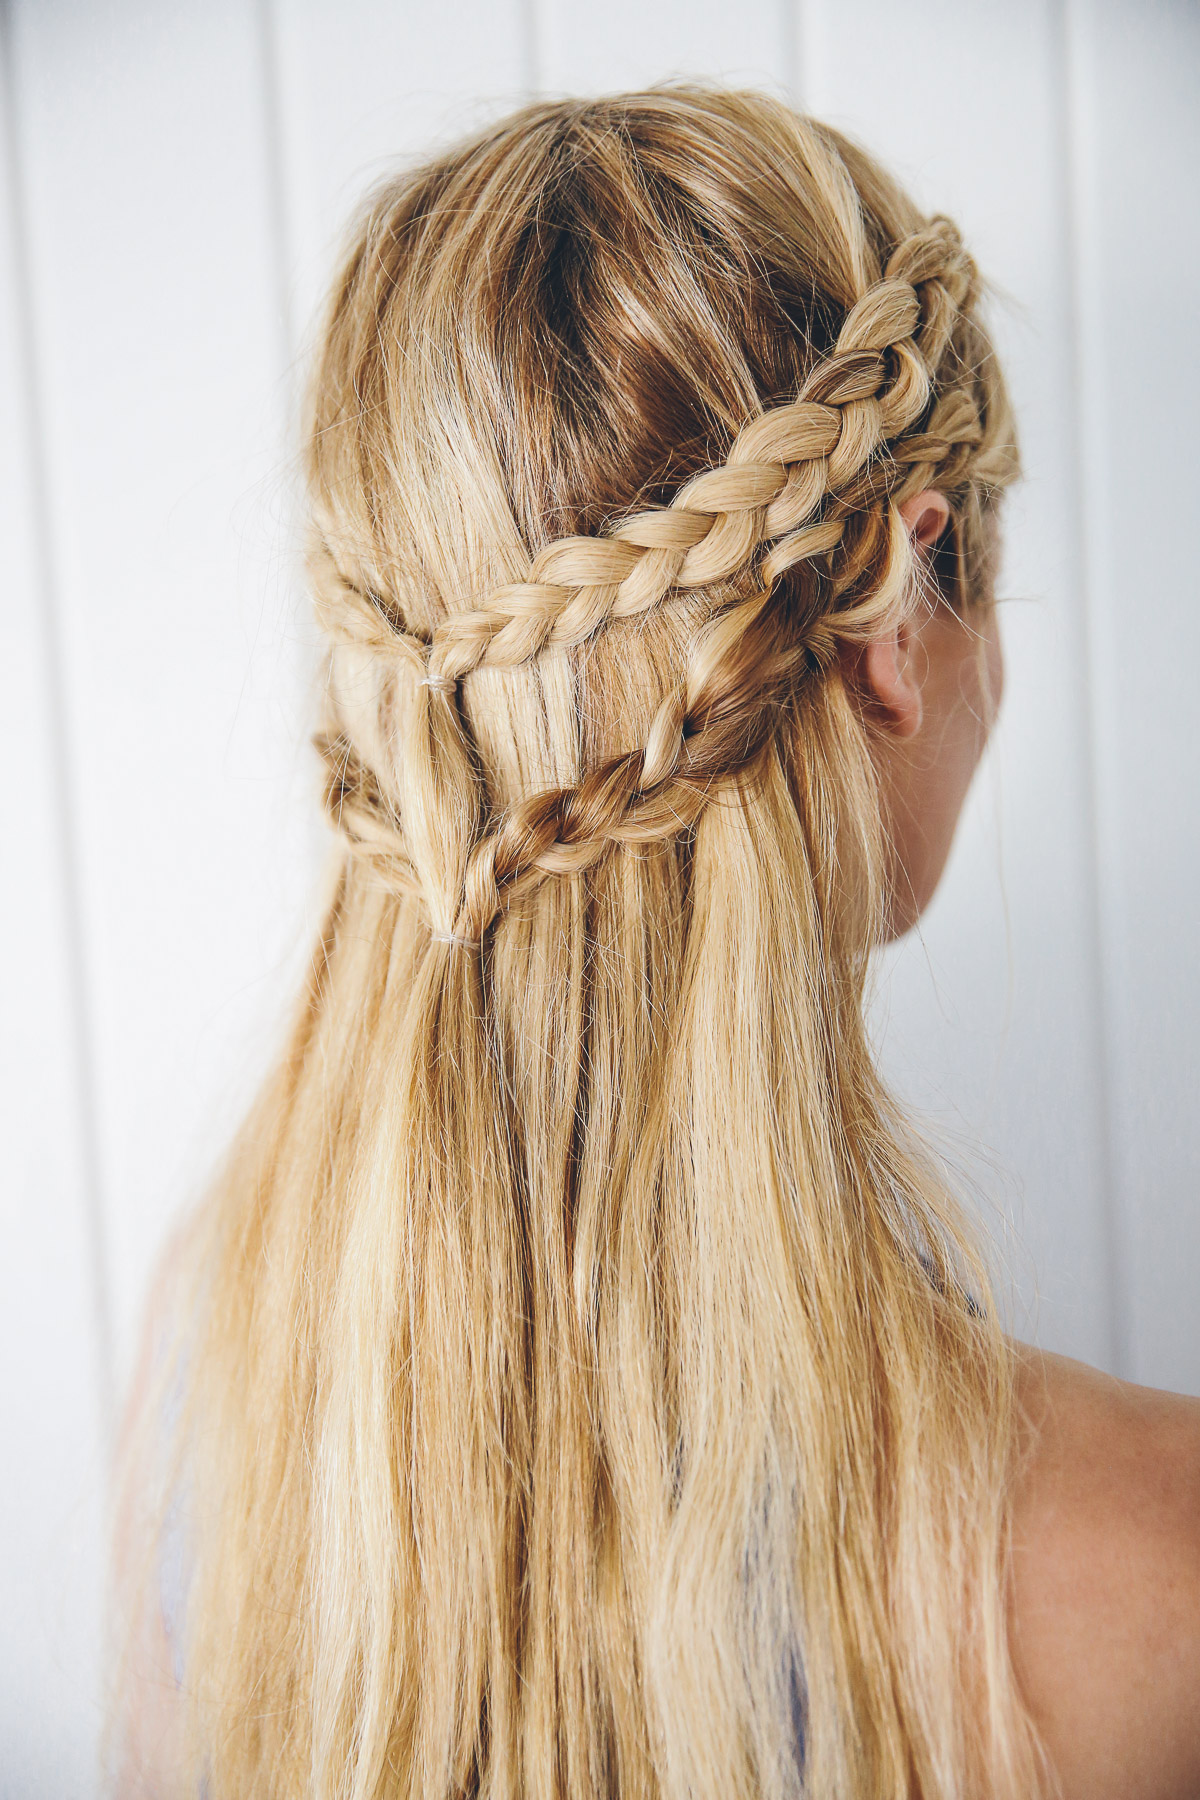 Barefoot Blonde Amber Fillerup doing Khaleesi Inspired Hair Tutorial